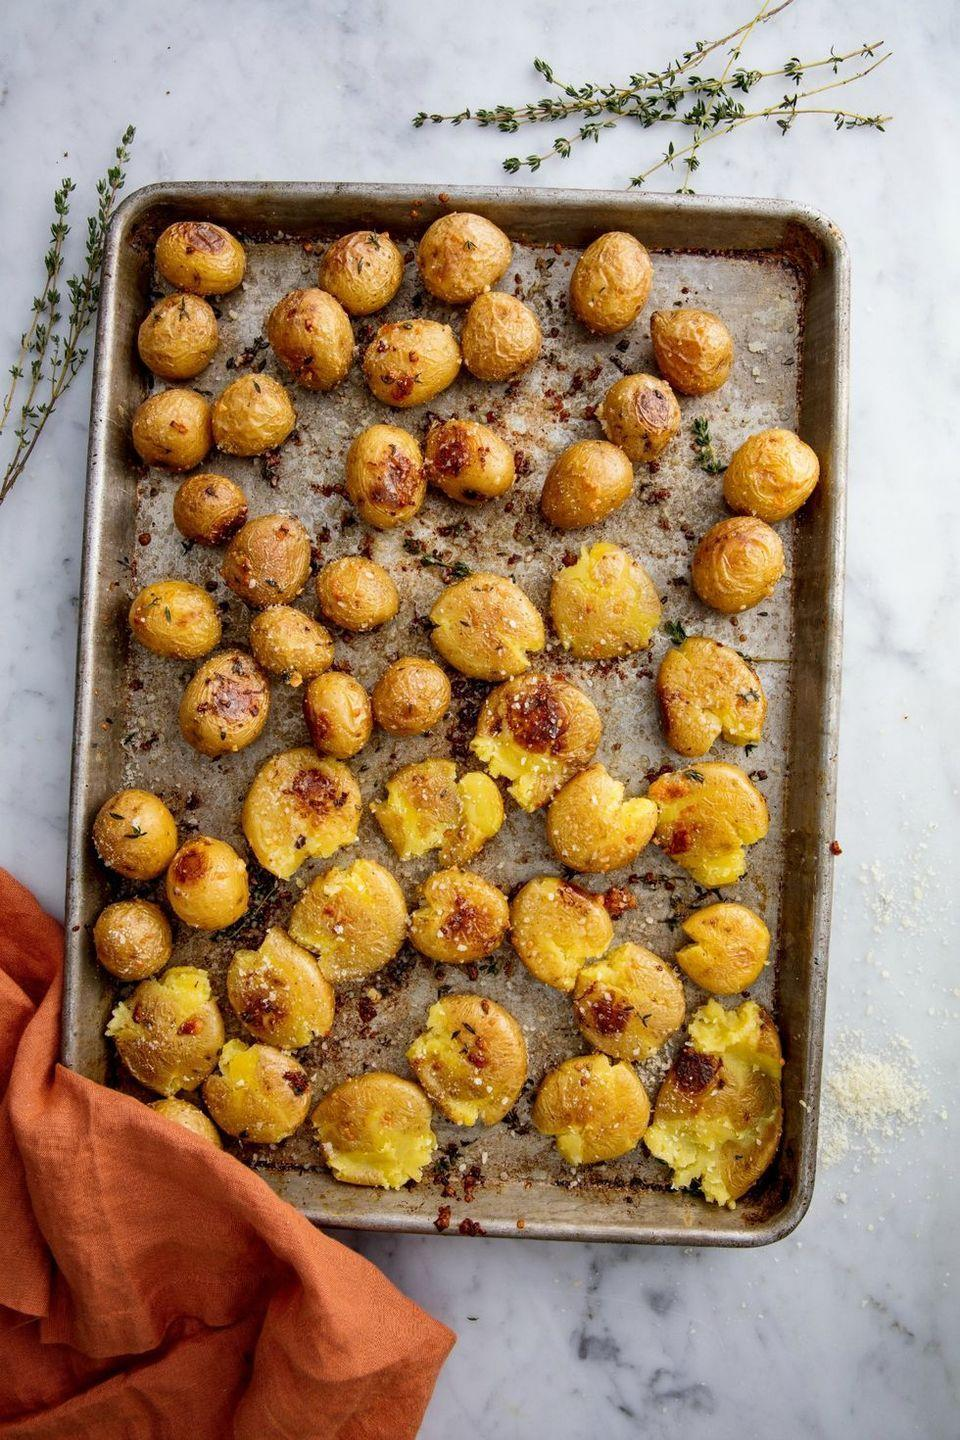 """<p>Step aside, mashed potatoes. These tasty, garlicky smashed potatoes will be taking center stage this year. </p><p><strong><em>Get the recipe at <a href=""""https://www.delish.com/cooking/recipe-ideas/recipes/a49007/garlic-smashed-potatoes-recipe/"""" rel=""""nofollow noopener"""" target=""""_blank"""" data-ylk=""""slk:Delish"""" class=""""link rapid-noclick-resp"""">Delish</a>. </em></strong><br></p>"""